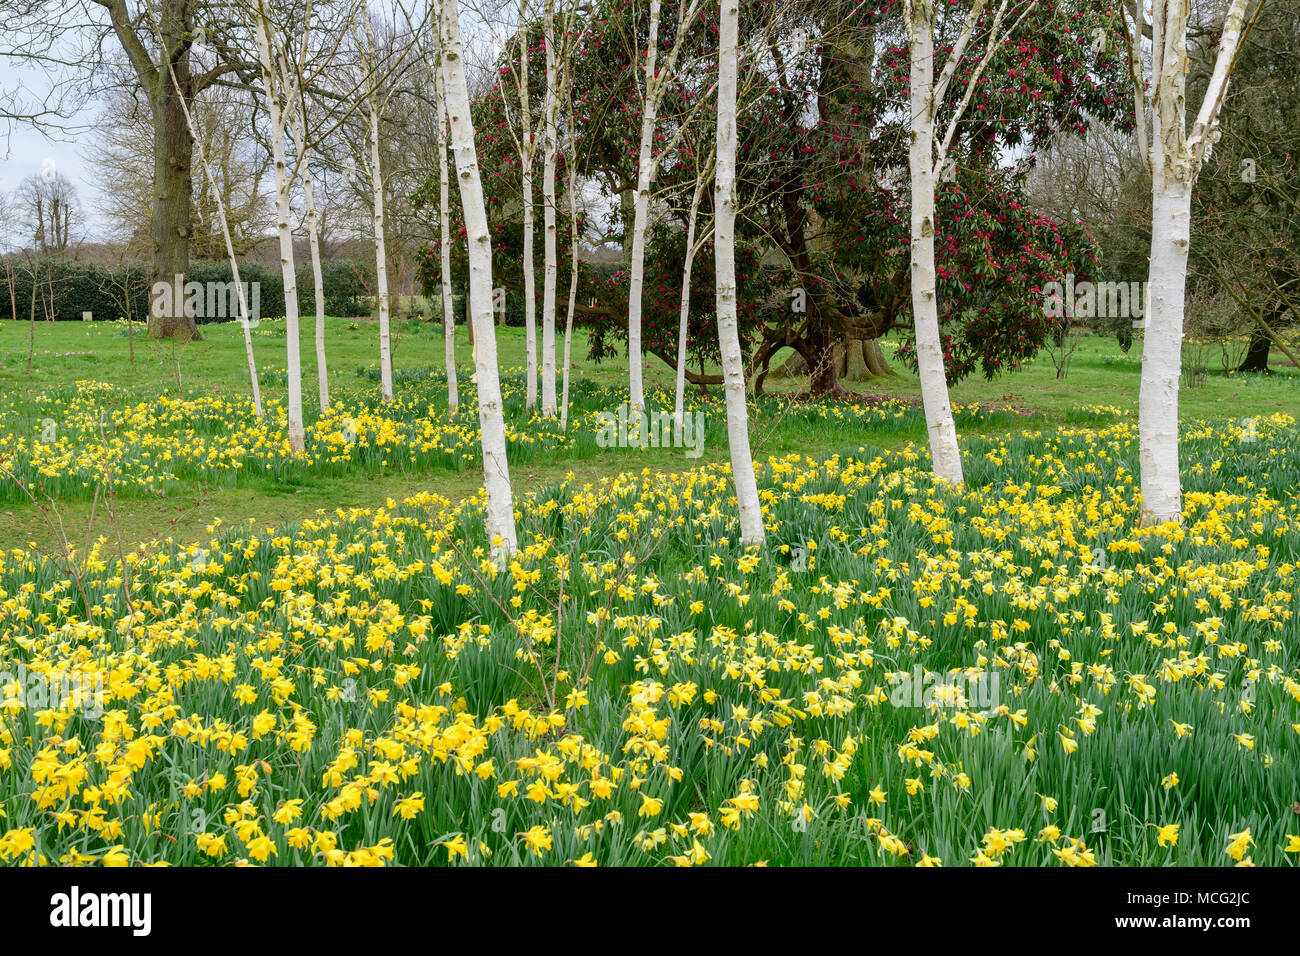 Birch trees with white bark and blooming yellow daffodils at birch trees with white bark and blooming yellow daffodils at hatfield house park mightylinksfo